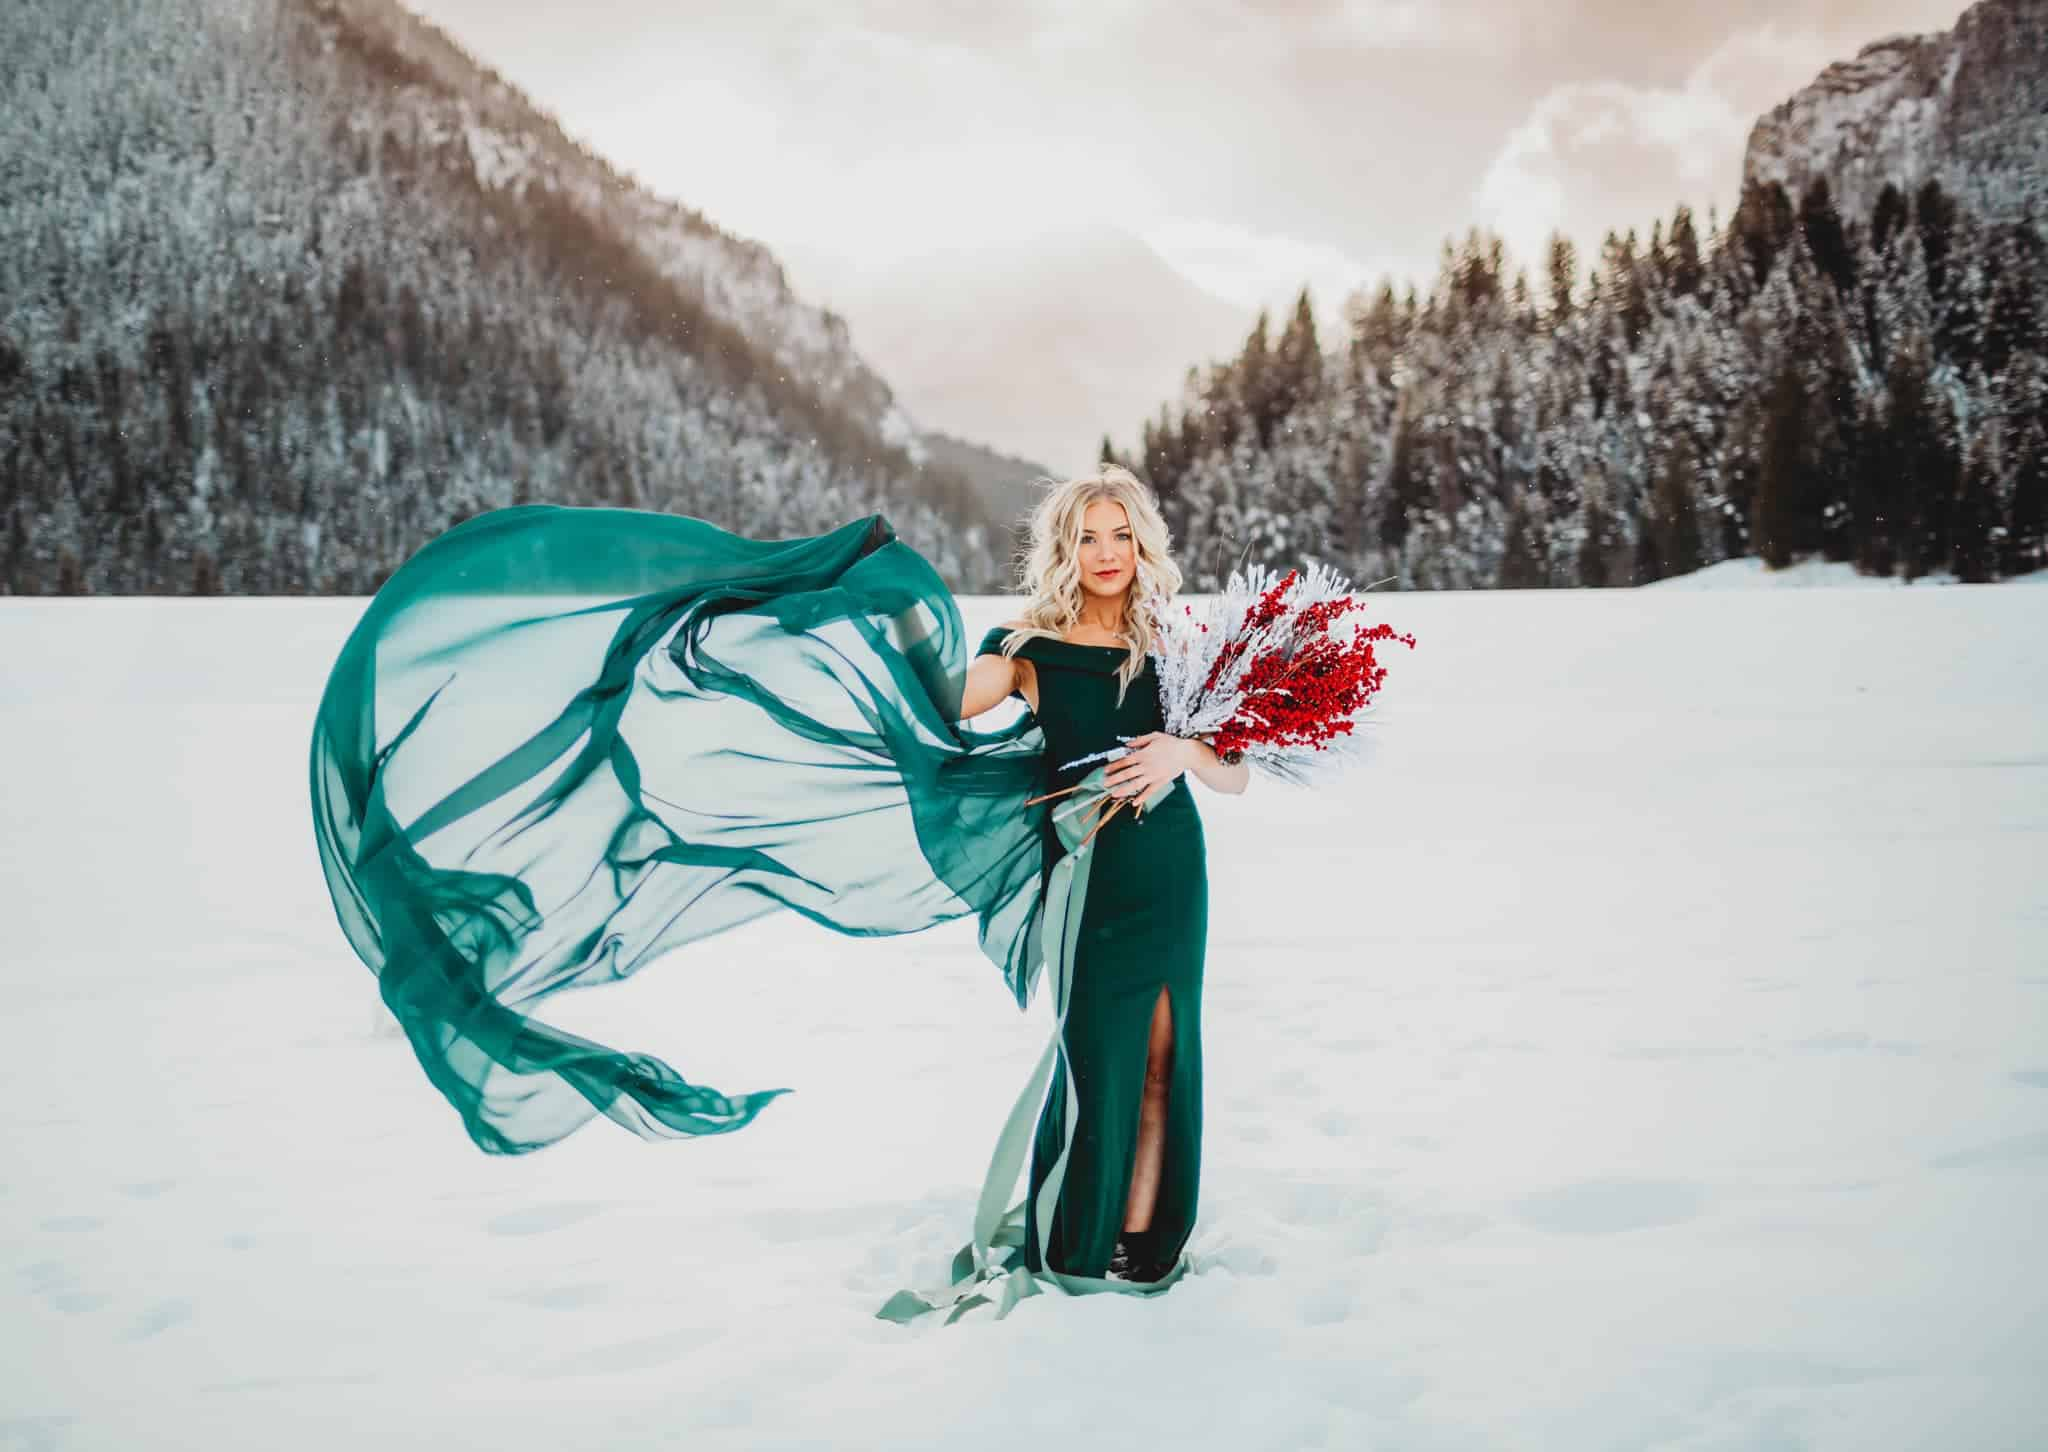 bridal portrait of a bride in the snow, wearing a green dress